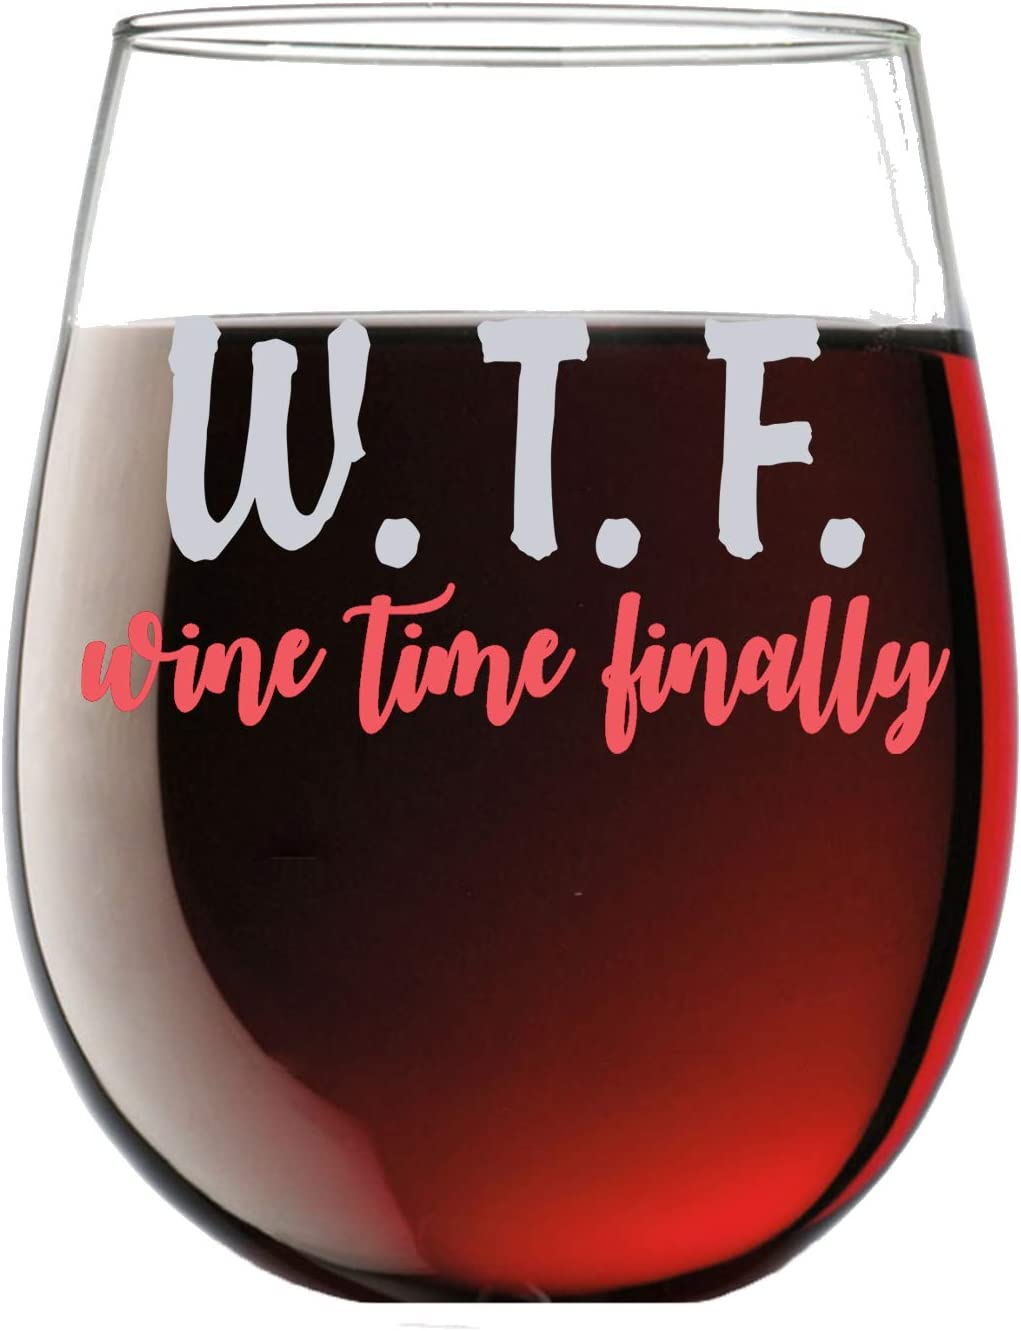 W.t.f. Wine Time Finally Funny 15oz Stemless Crystal Wine Glass - Fun Wine Glasses with Sayings Gifts for Women